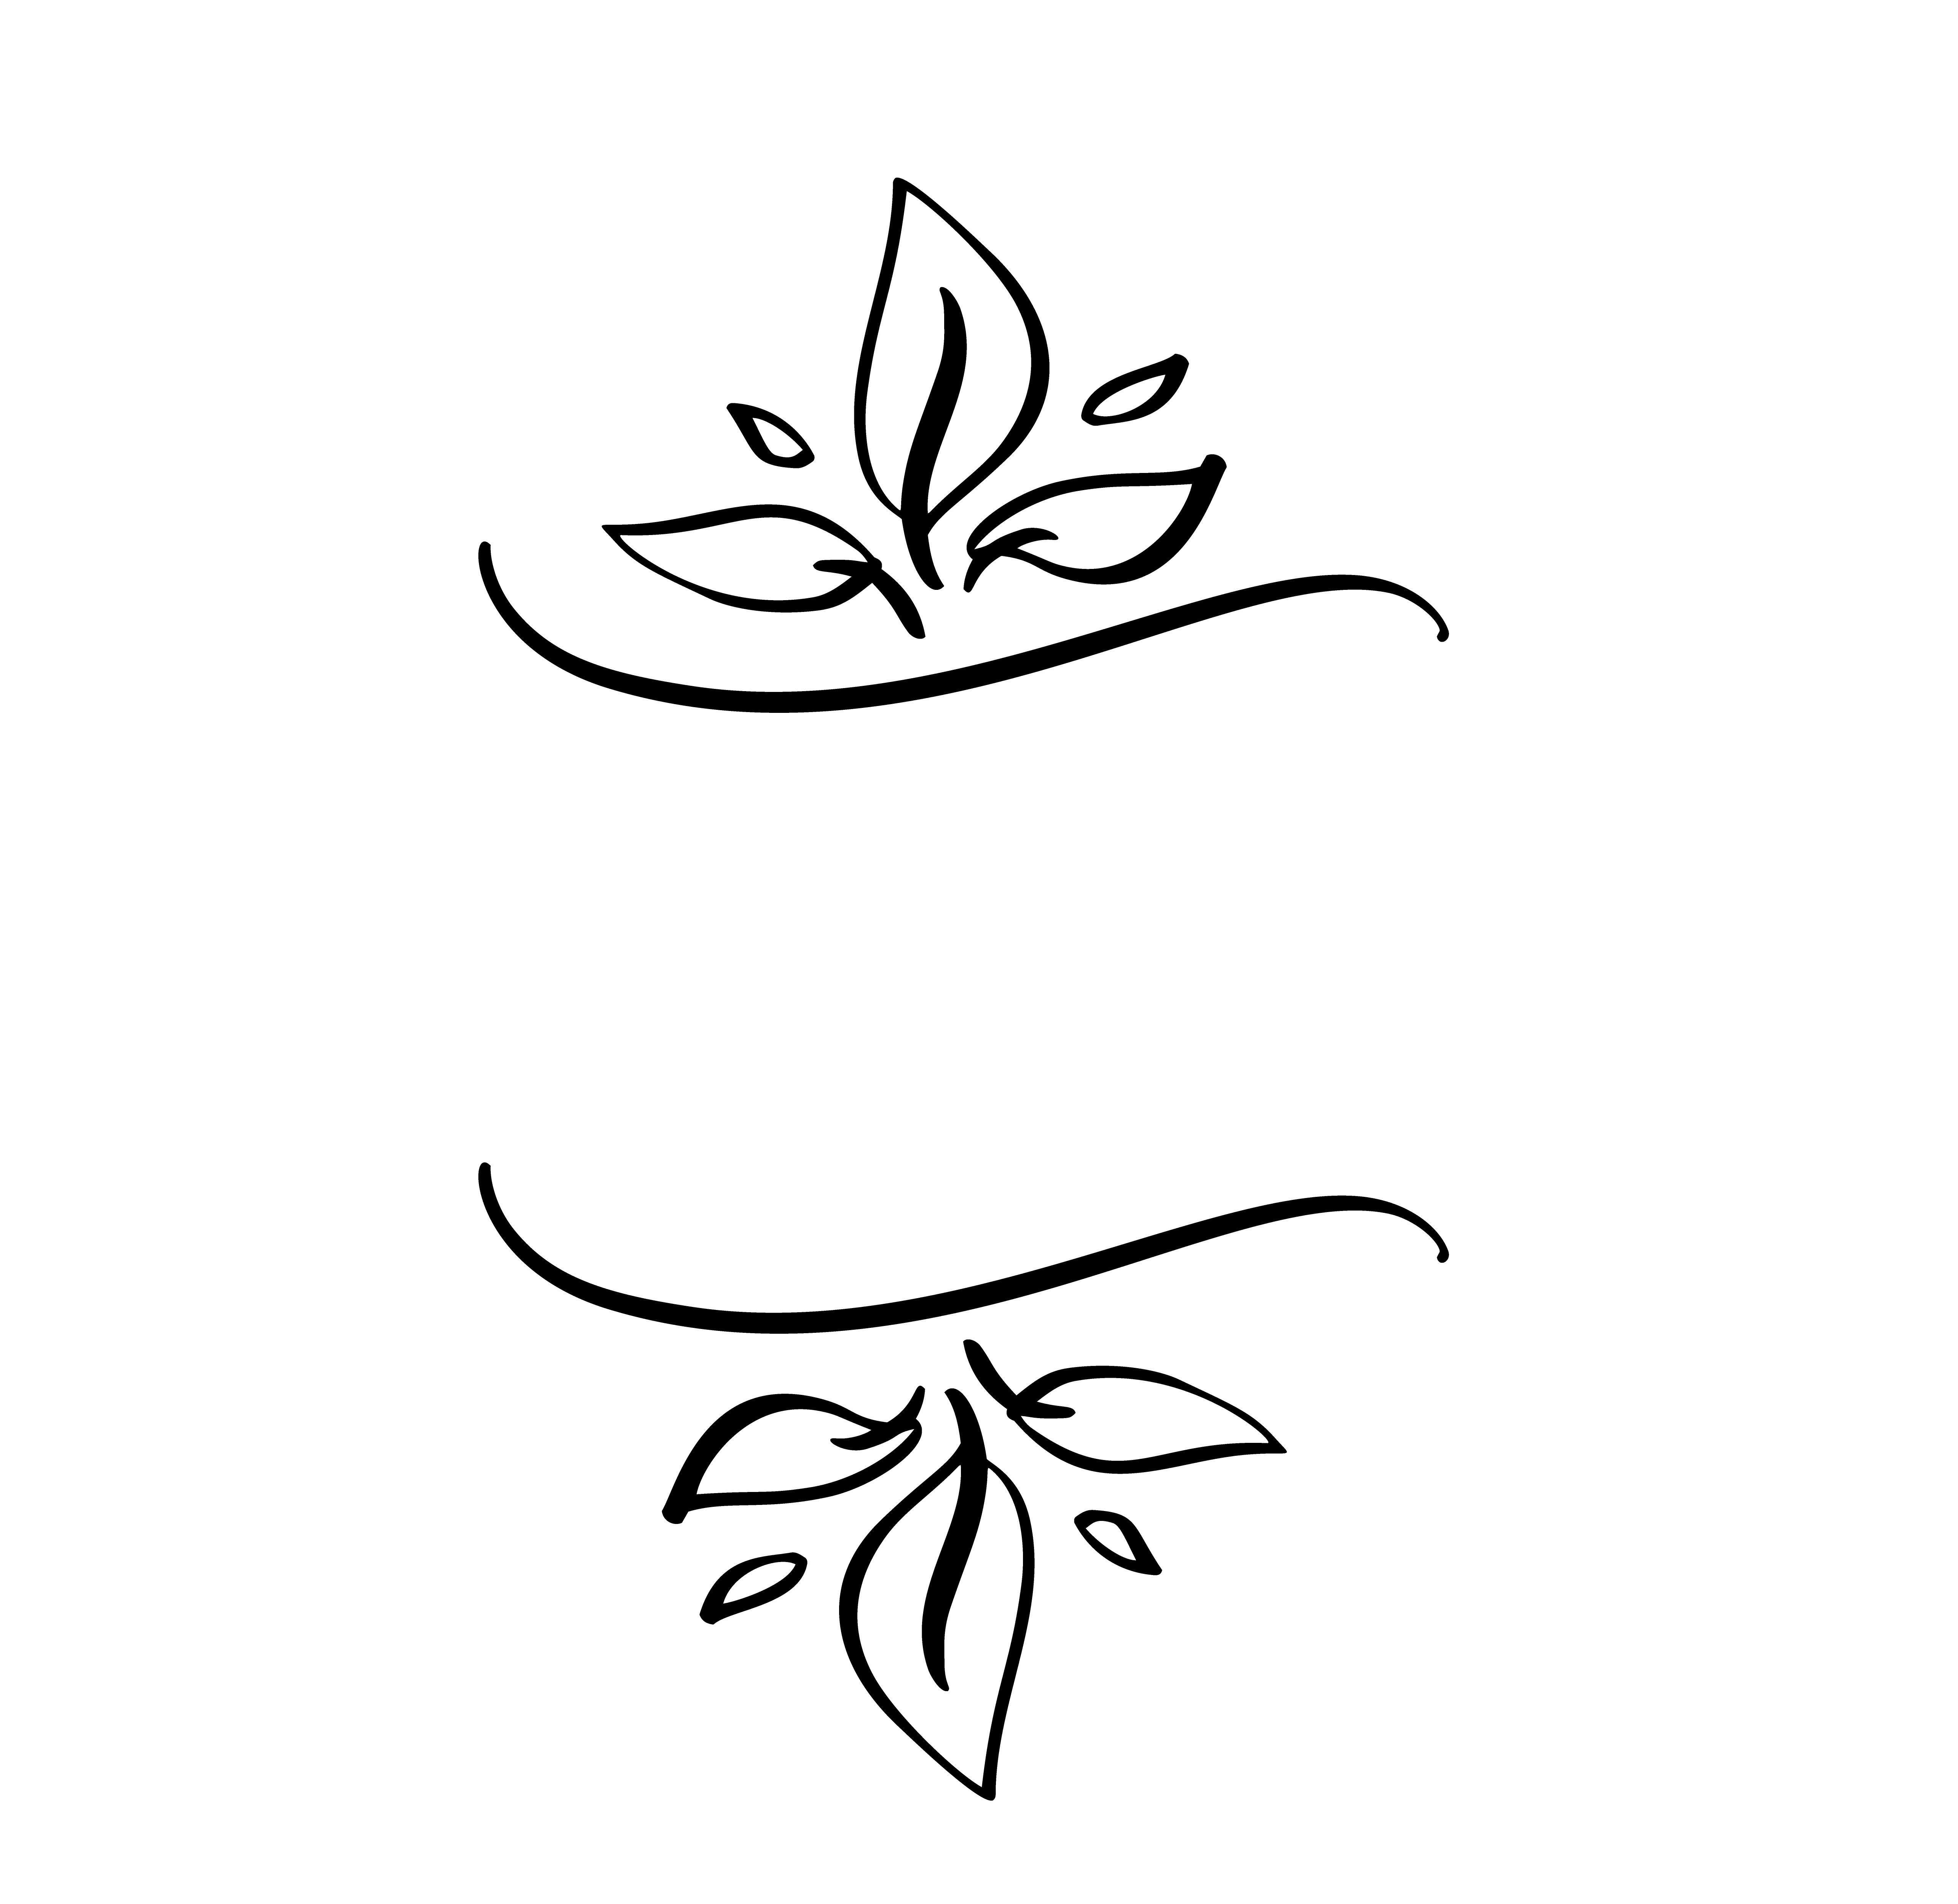 Autumn Vector Illustration Leaves Border Frame With Space